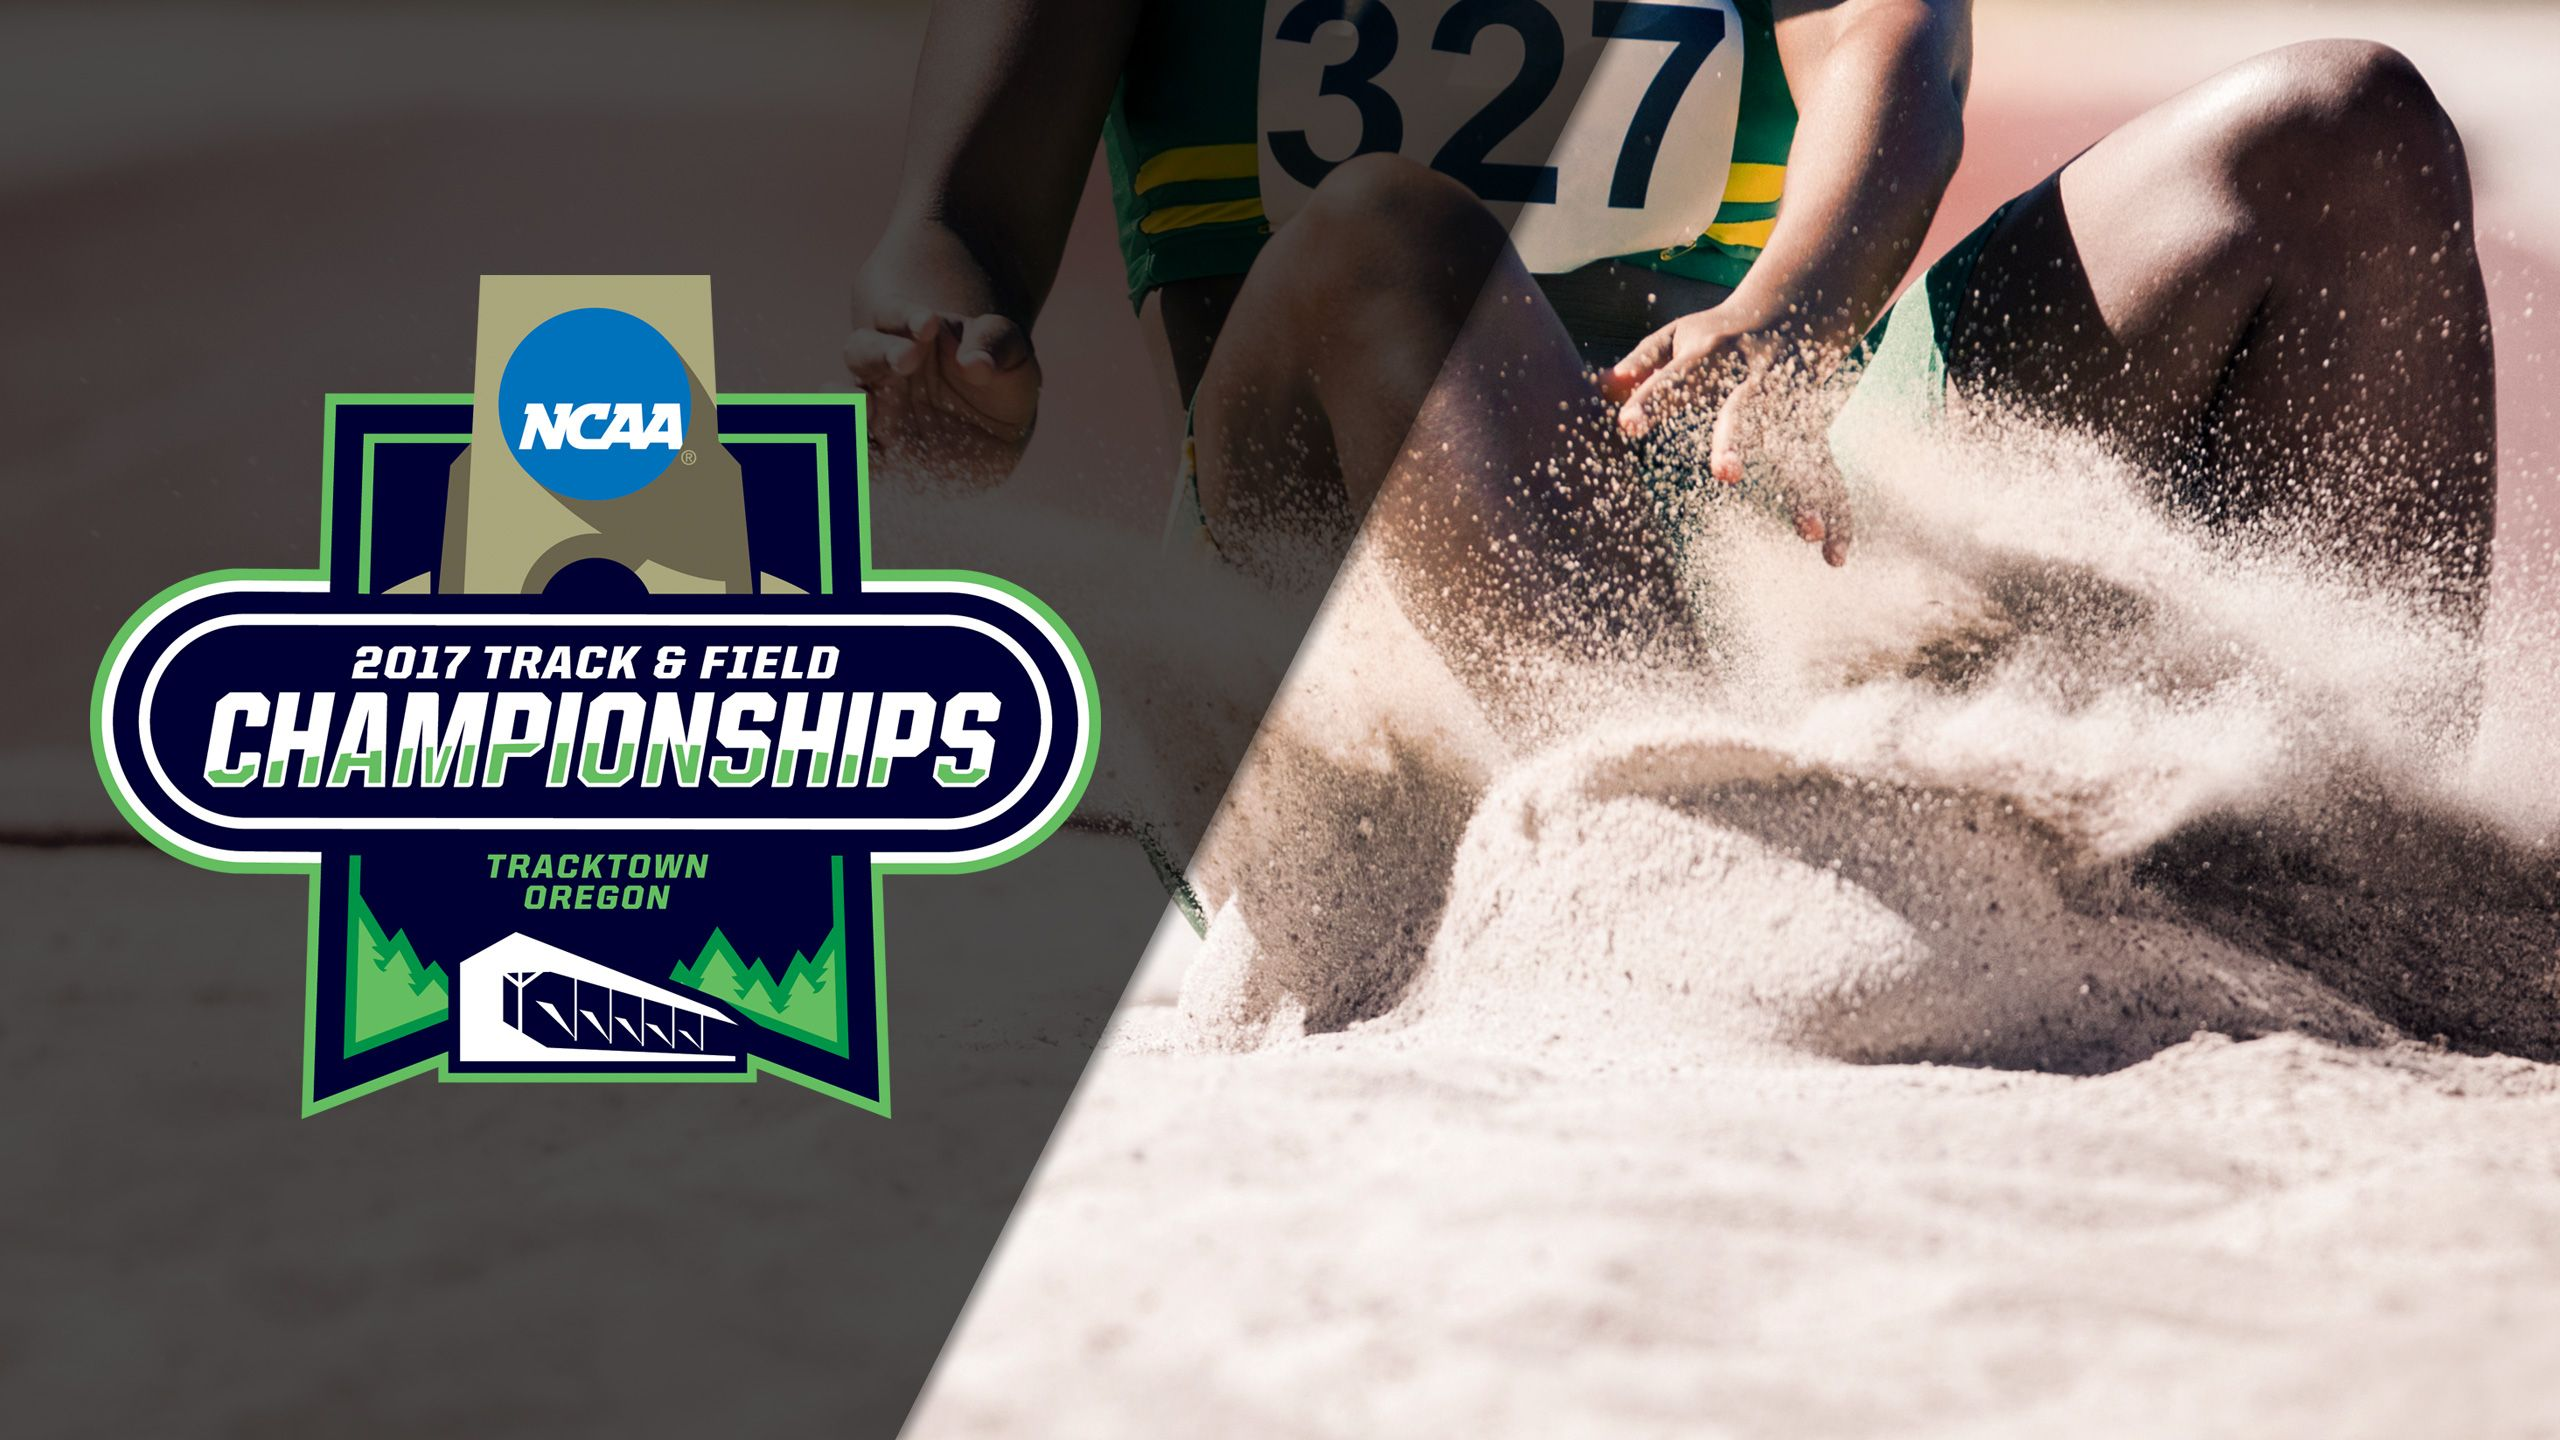 NCAA Track & Field Outdoor Championships - Women's Long Jump Trials (Flight 2) & Final